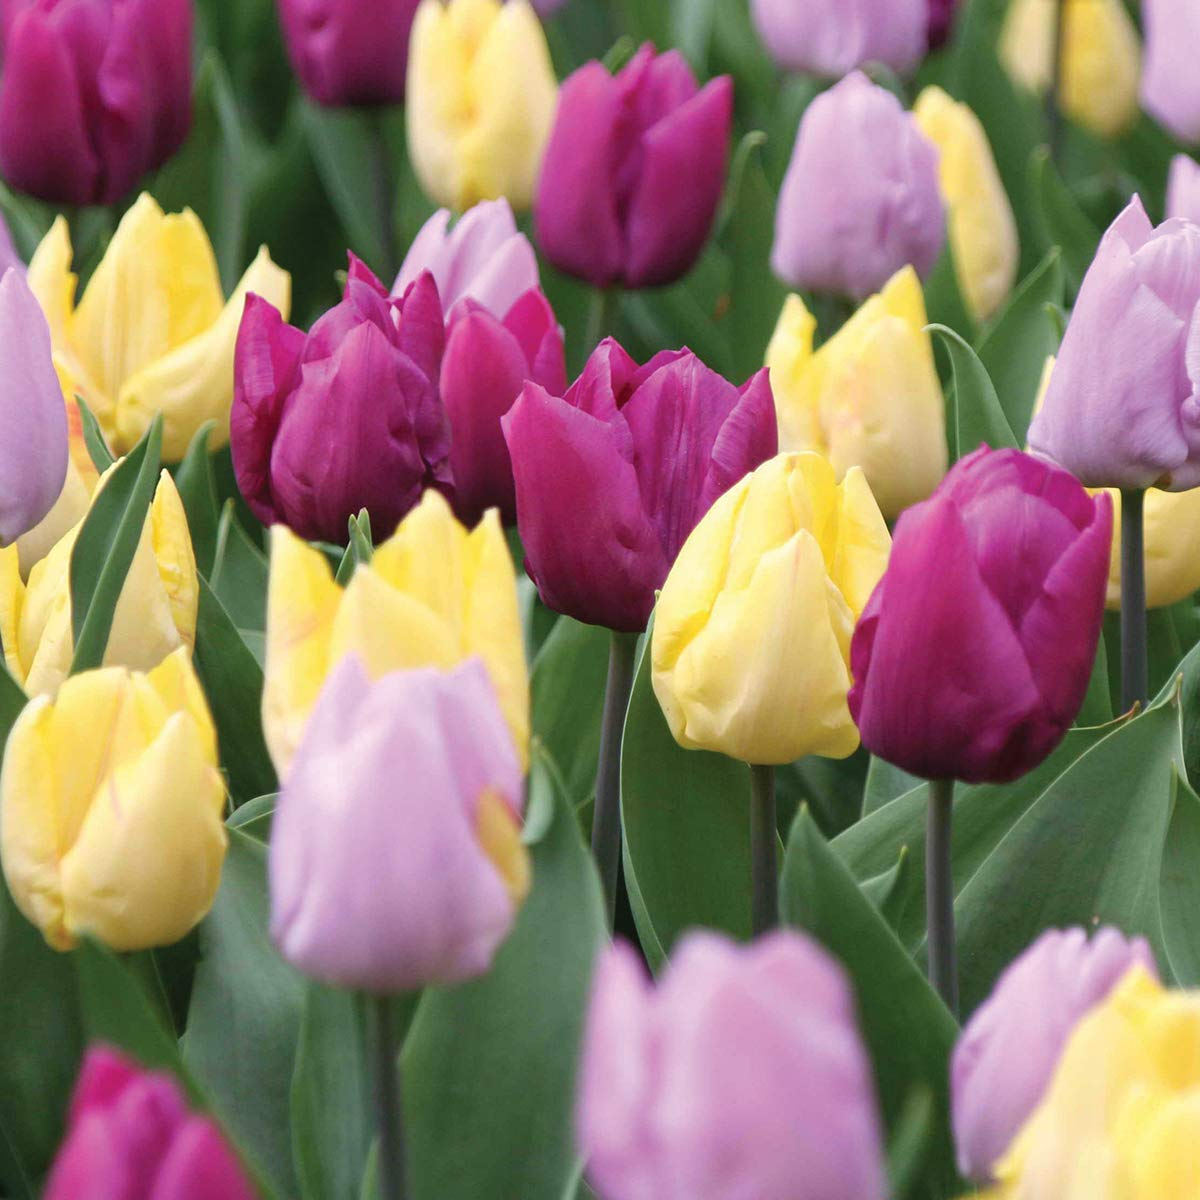 Burpee Early Prince Tulip Mix   15 Large Flowering Fall Bulbs for Planting, Lavender, Yellow & Purple